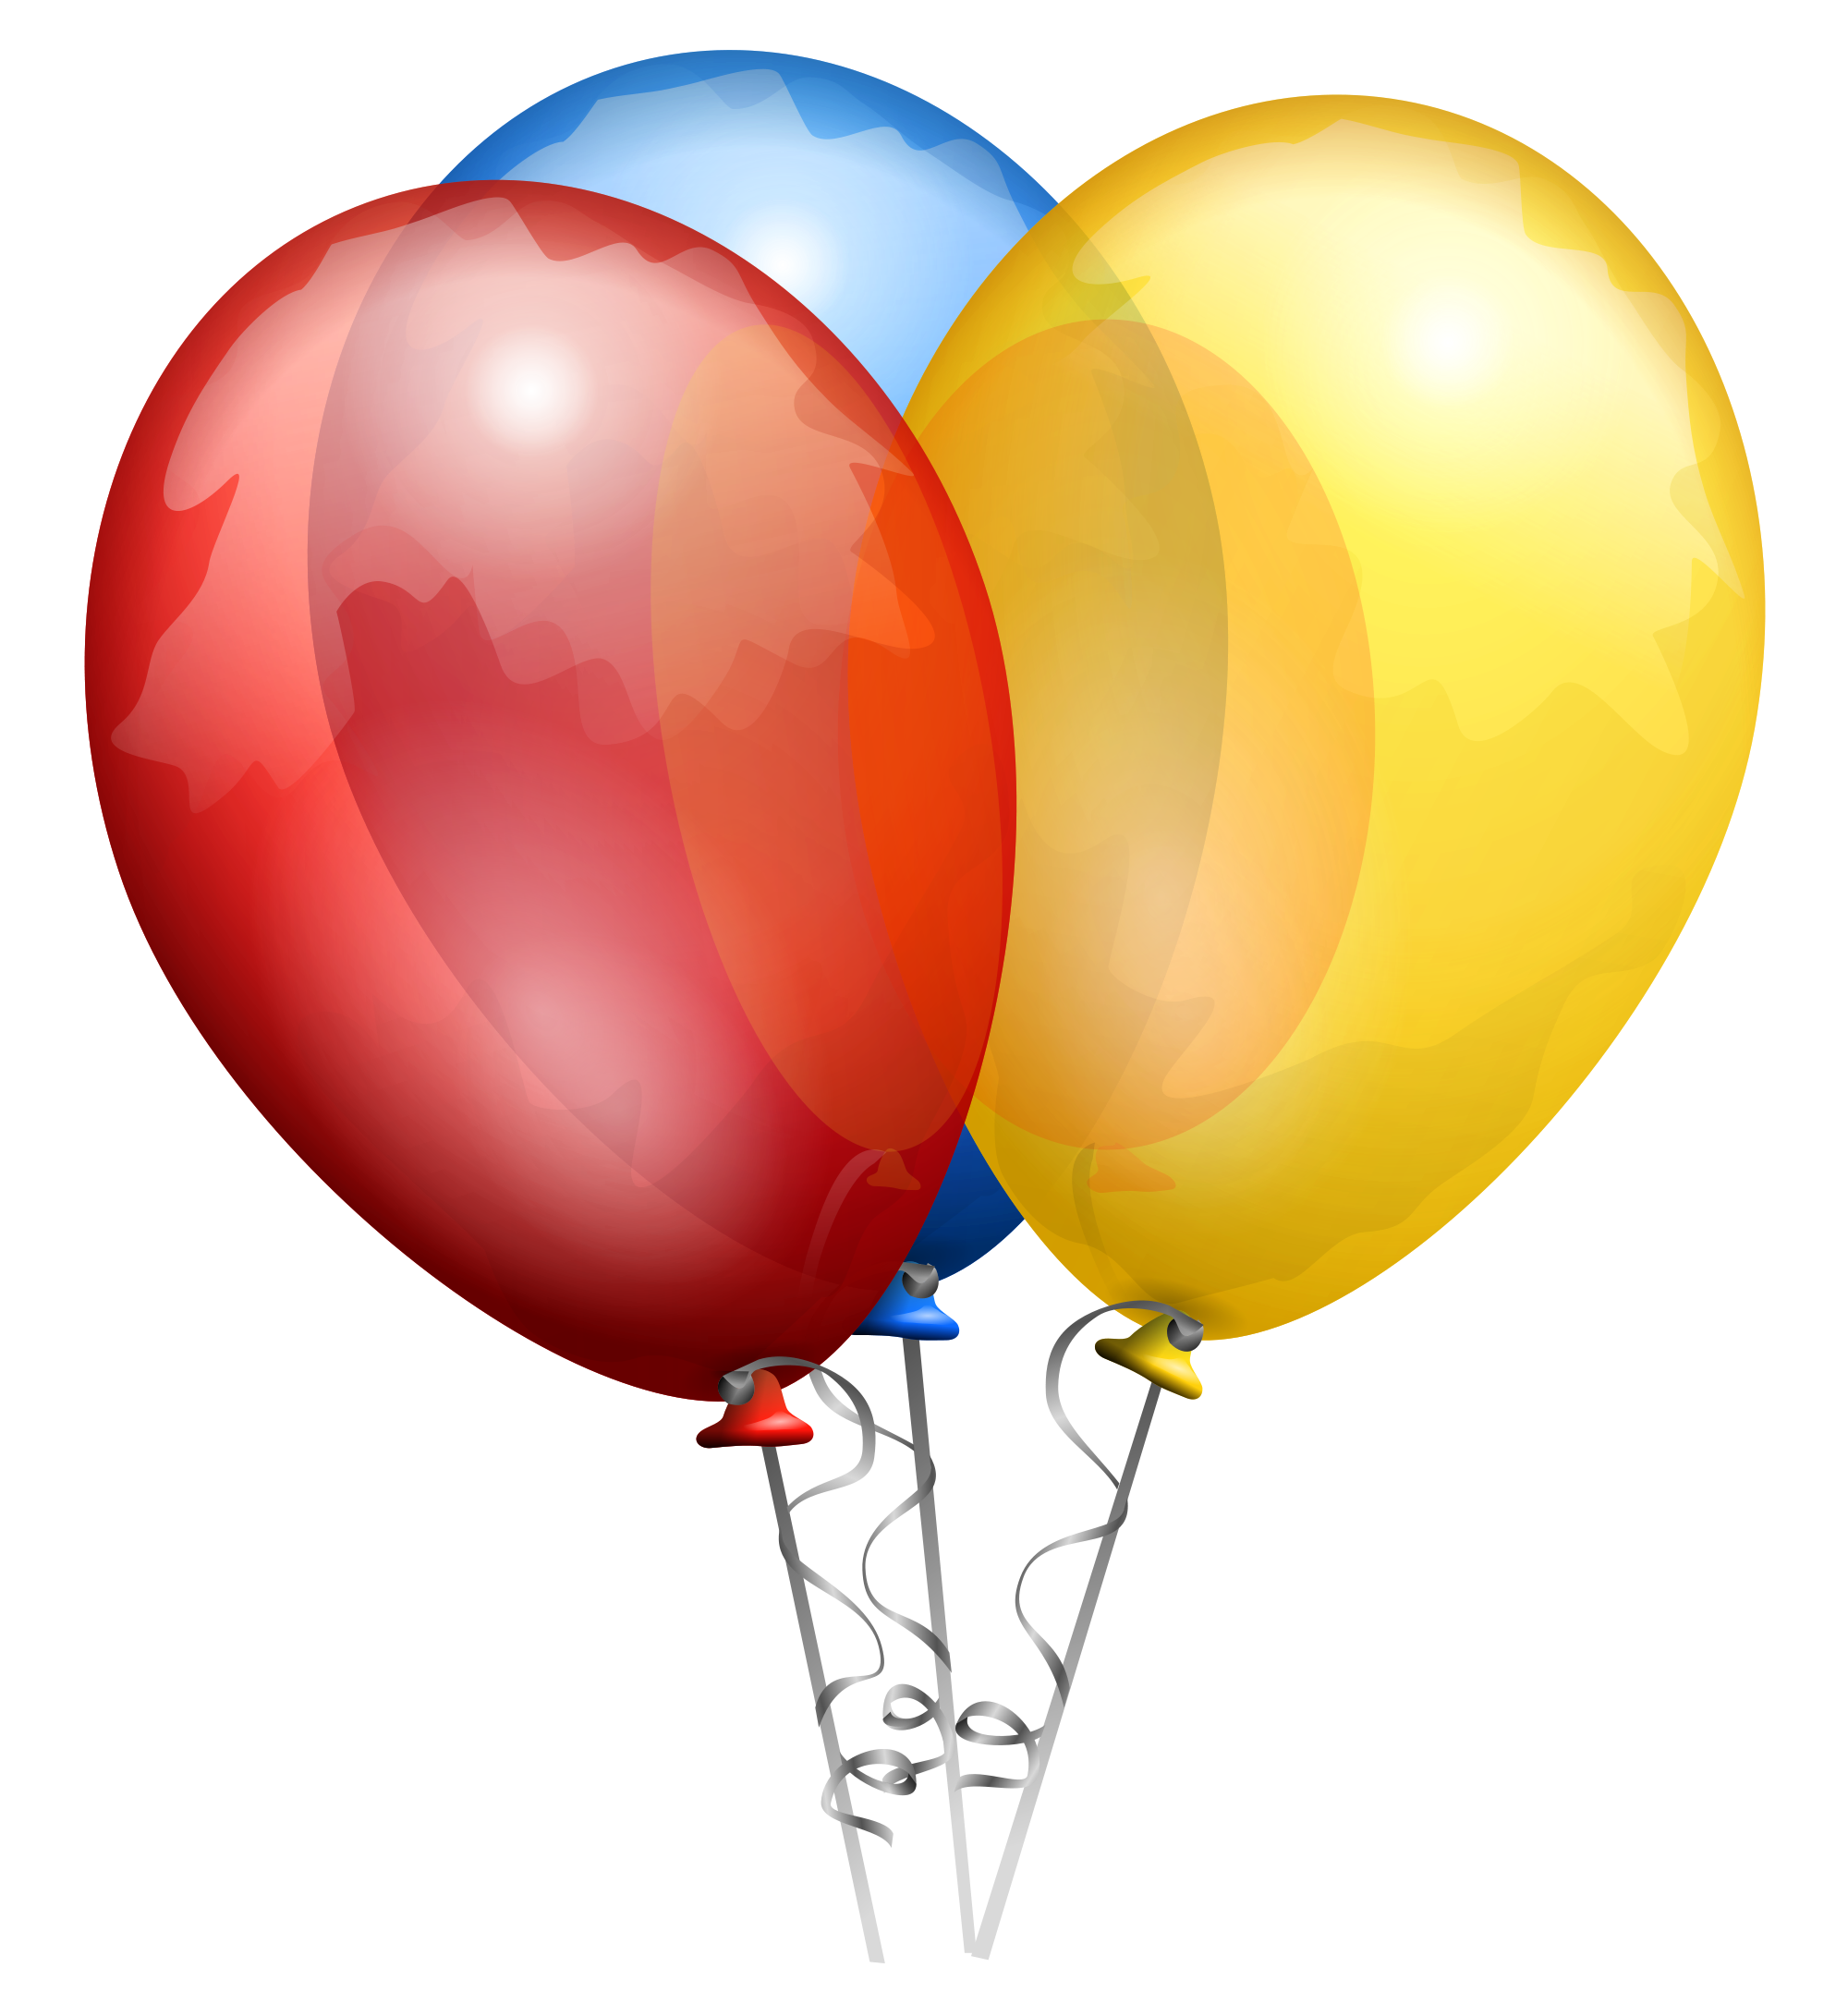 Party balloon png. Image balloons battlefield wiki